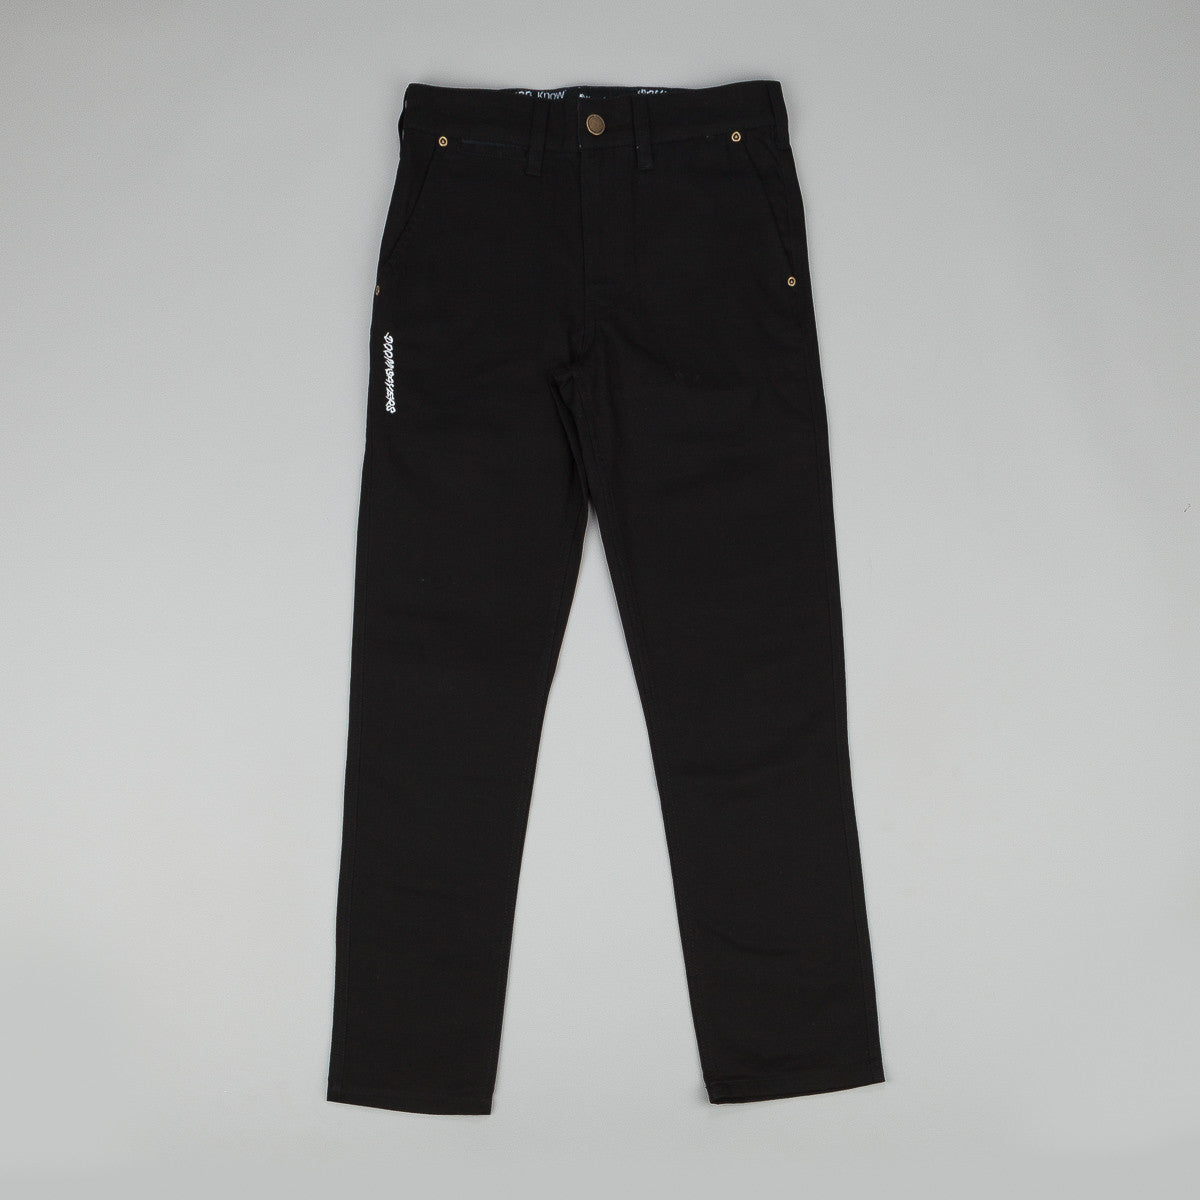 Doom Sayers X Know1edge Brasco Trousers